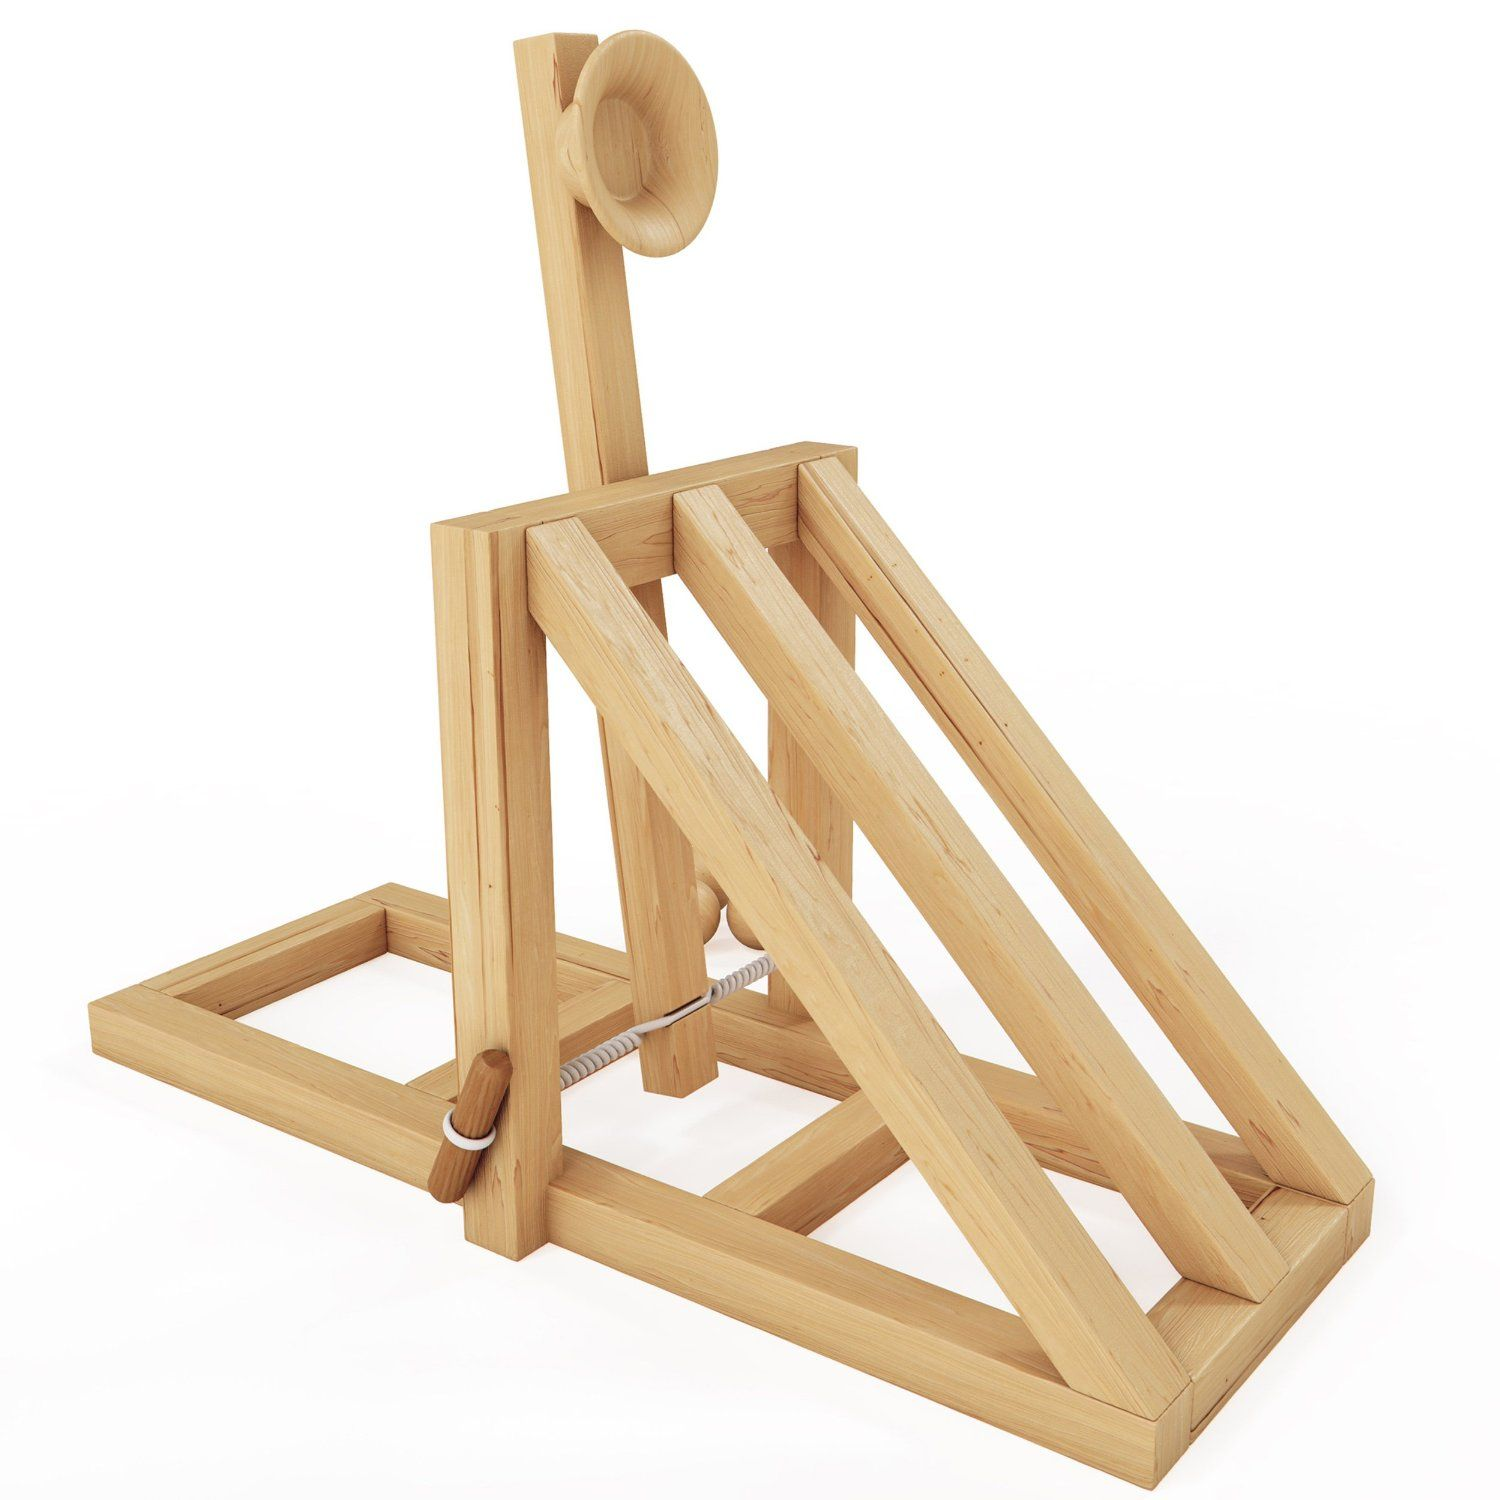 Mota catapult desktop battle kit mota juegos y juguetes wishlist de regalos for Catapult design plans for physics